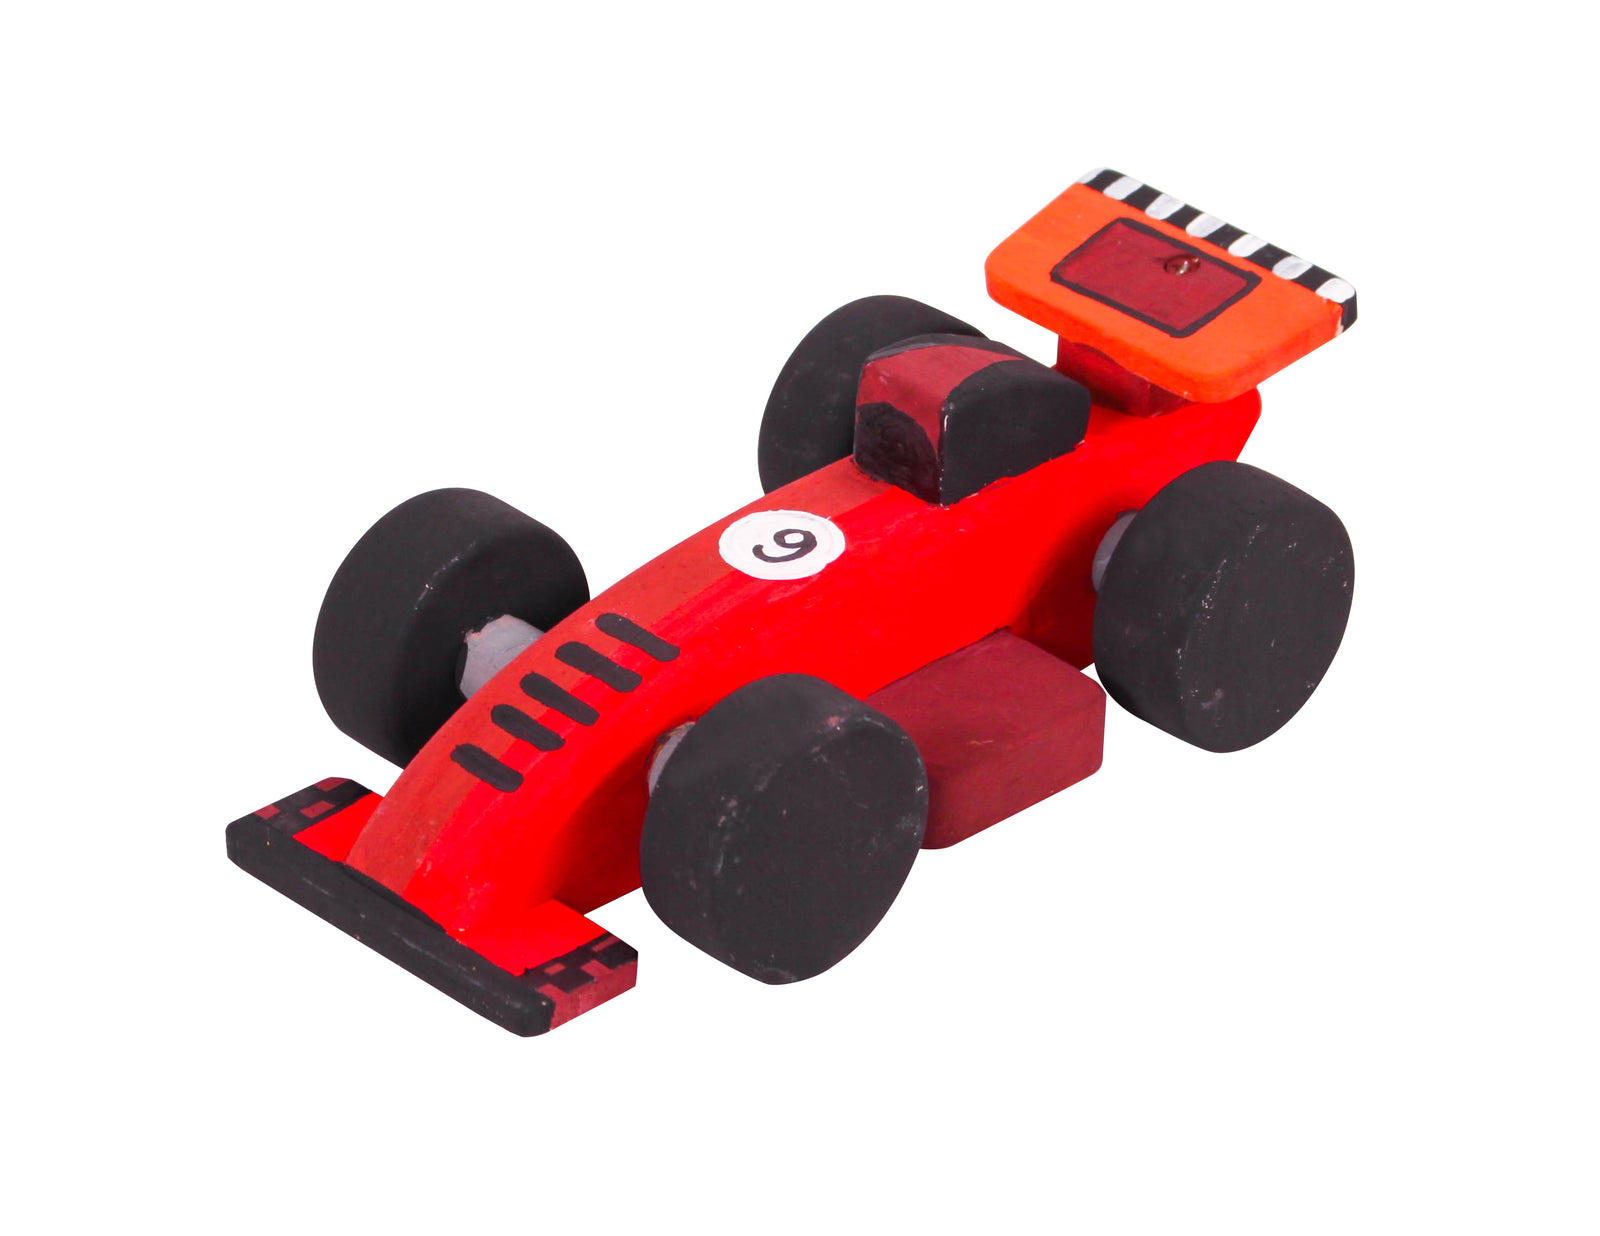 Paint and Play Racing Car